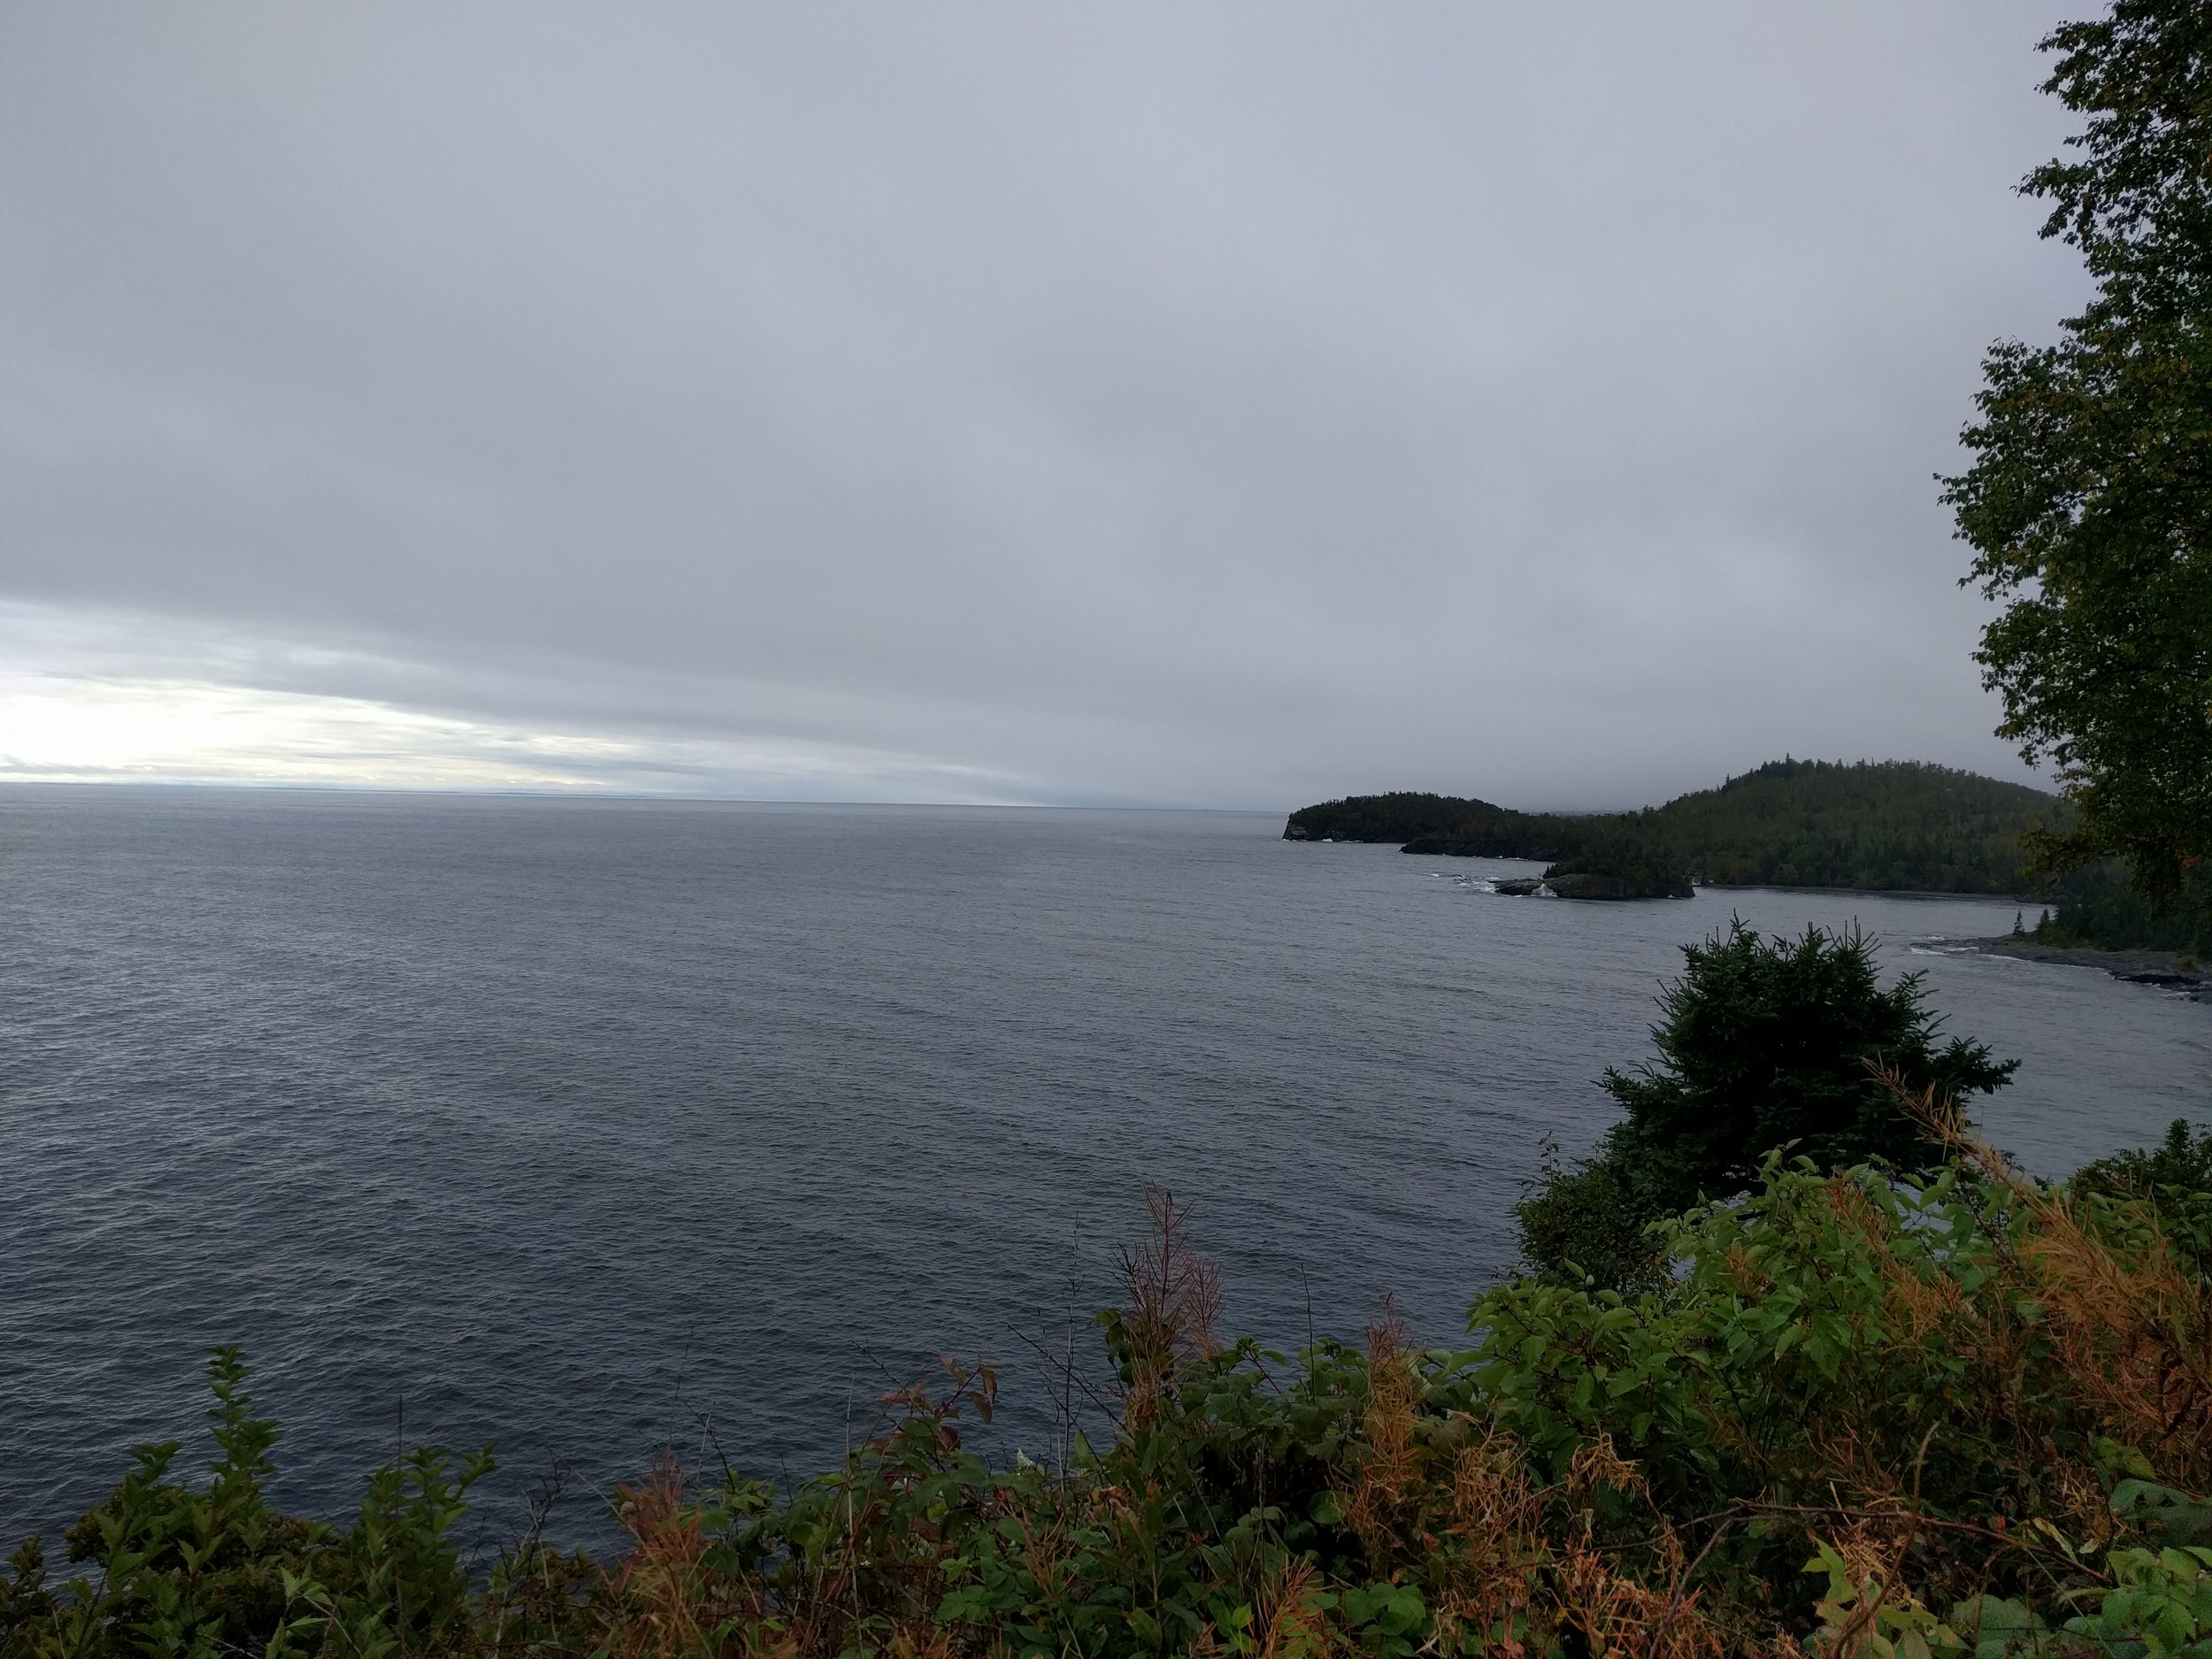 Lake Superior, looking west from Split Rock Lighthouse